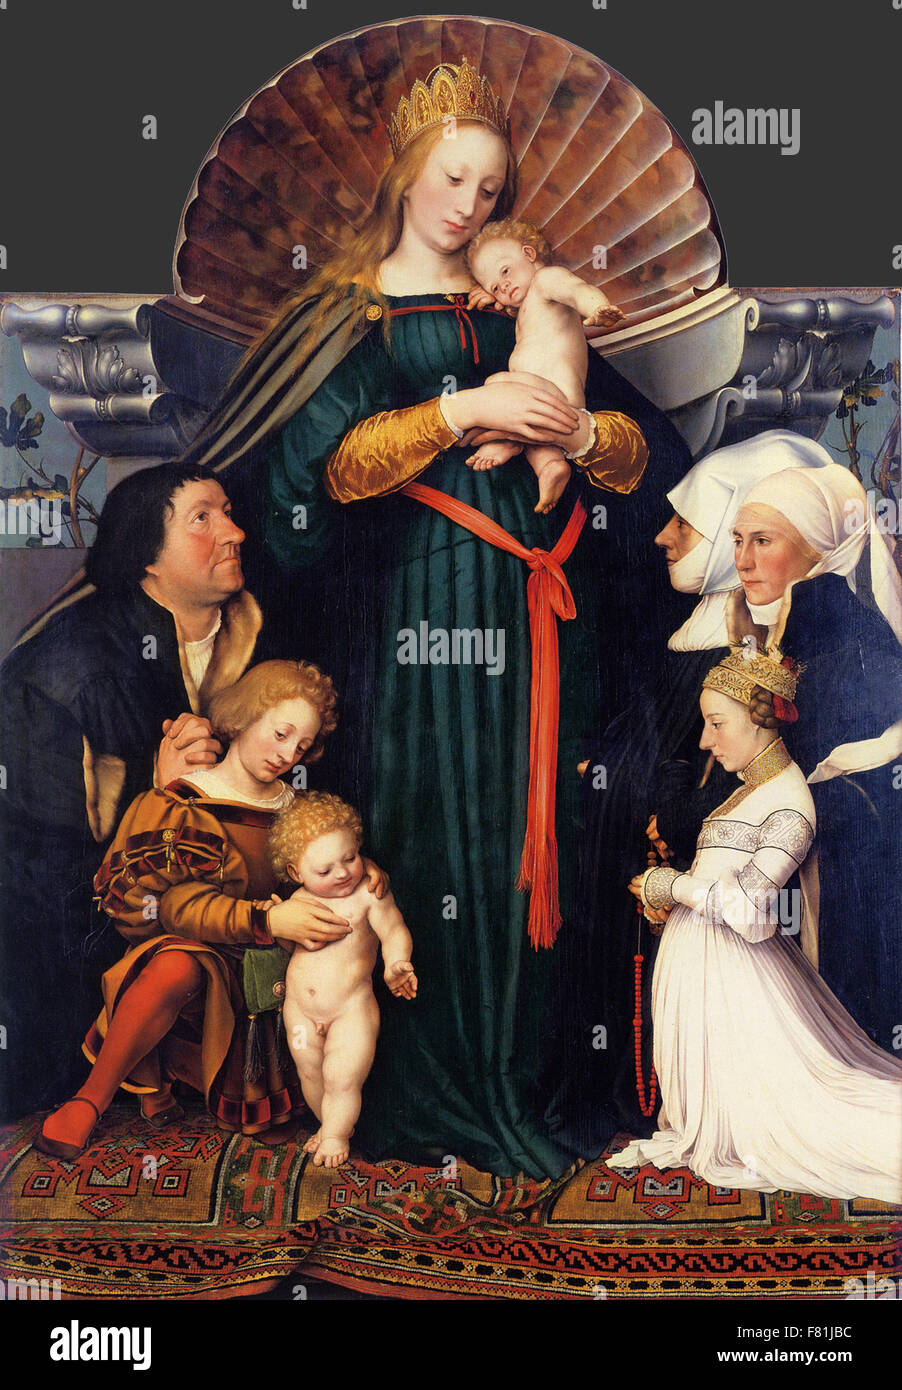 Hans Holbein the Younger - Darmstadt Madonna - Stock Image